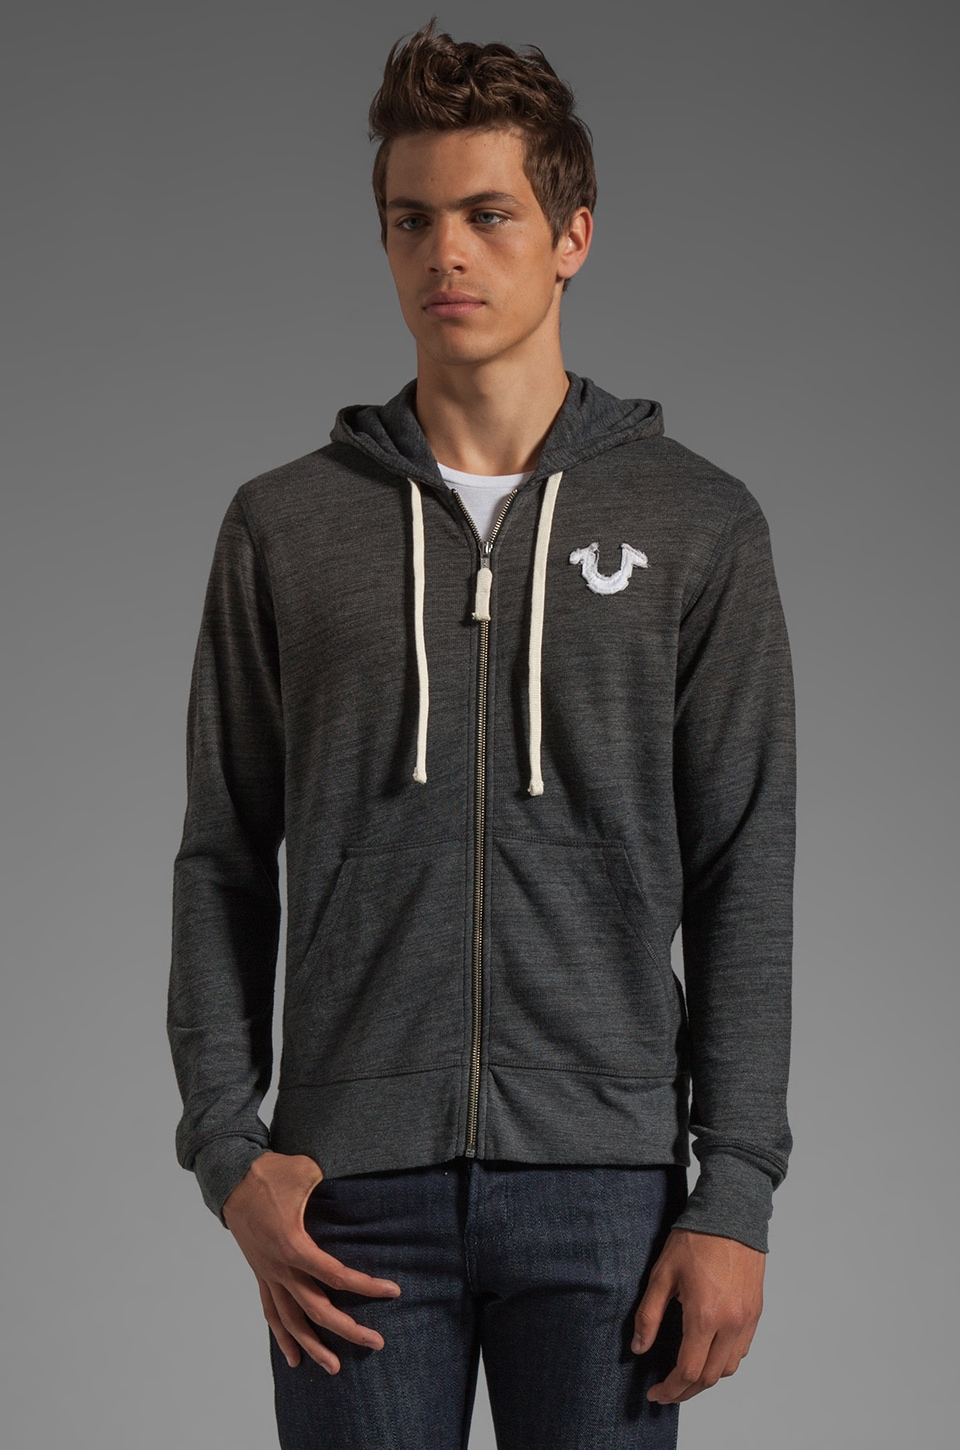 True Religion Echo Park Hoodie in Black